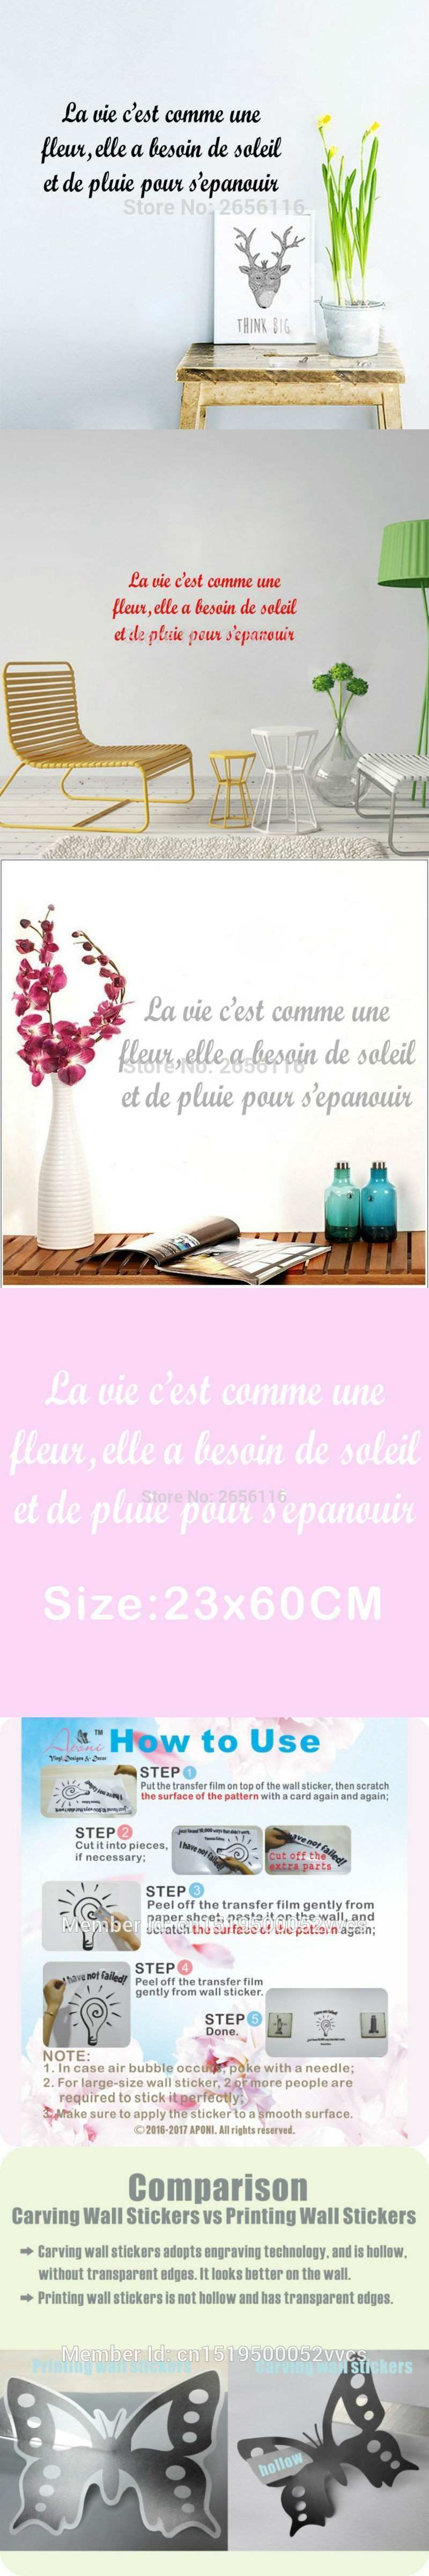 French Quotes wall decal for living room Wall Stickers Life is Like